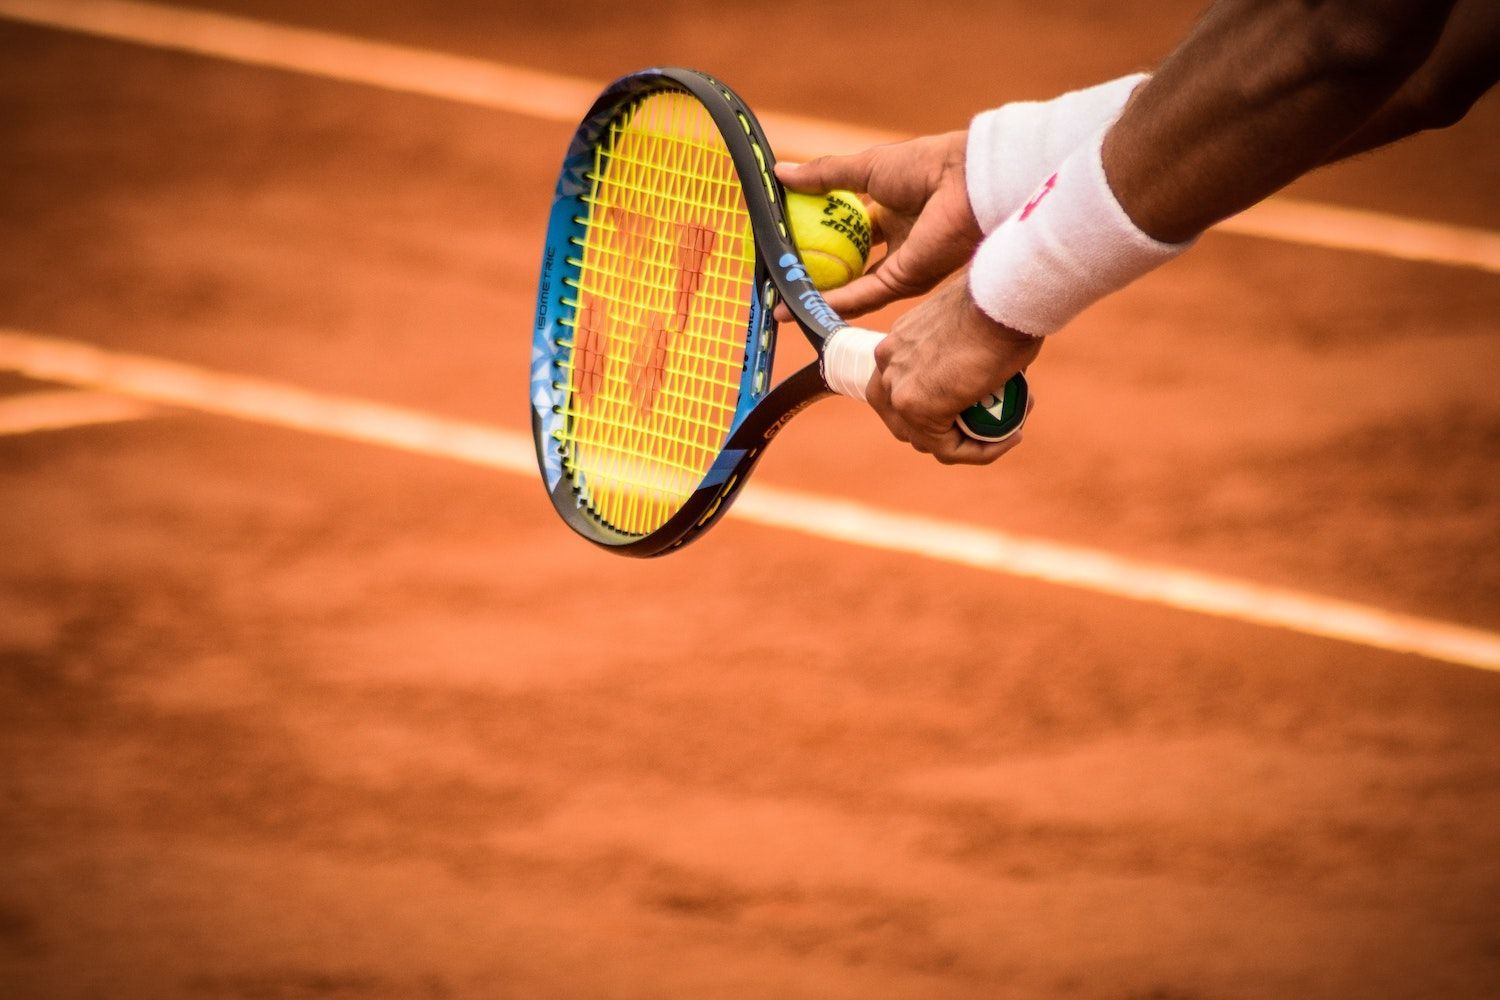 TennisMatch, a context aware app created by Matchmore